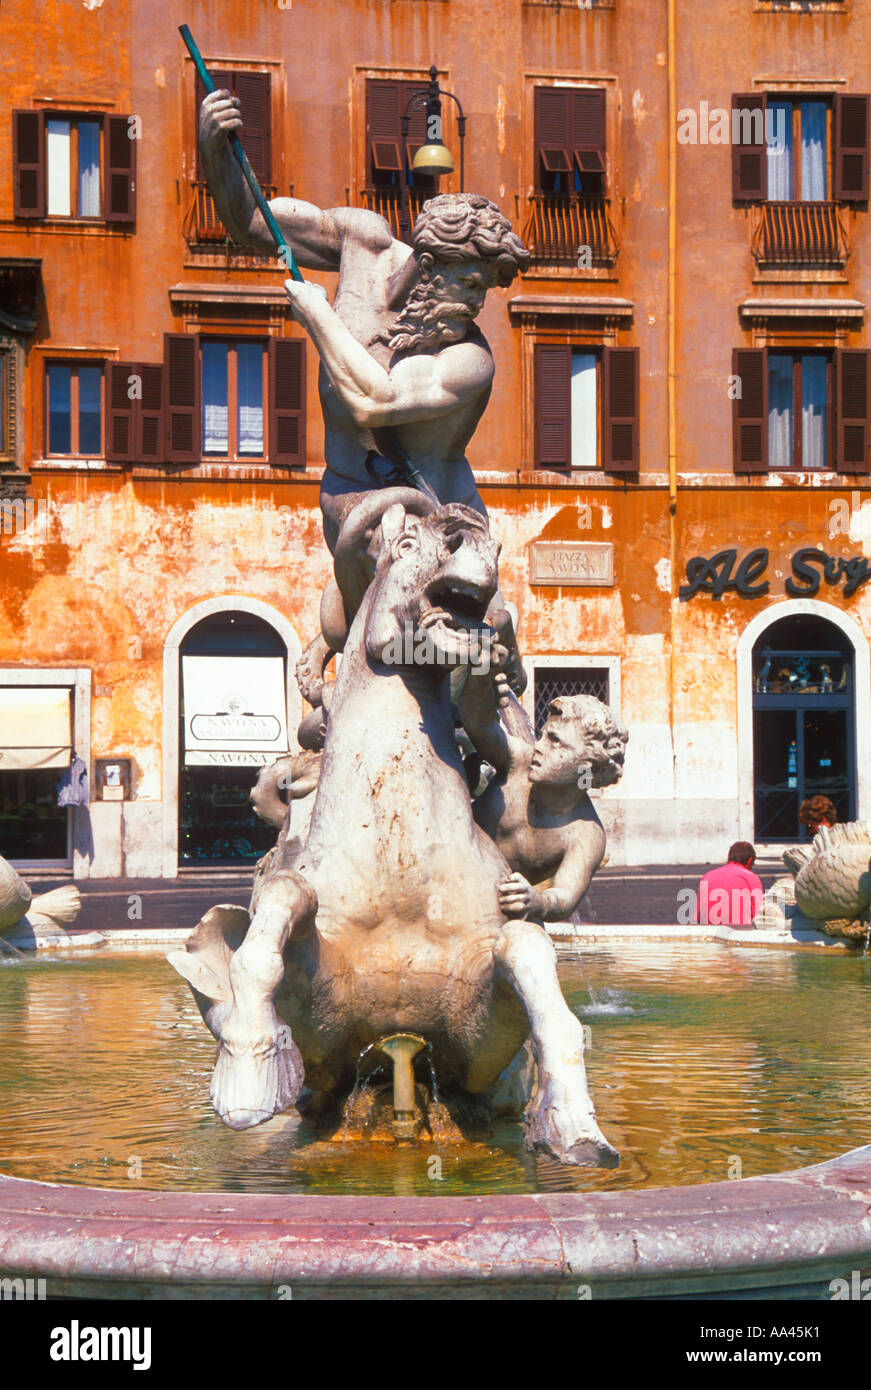 Rome Piazza Navona The Fountain of the Four Rivers by Giovanni Lorenzo Bernini Europe - Stock Image